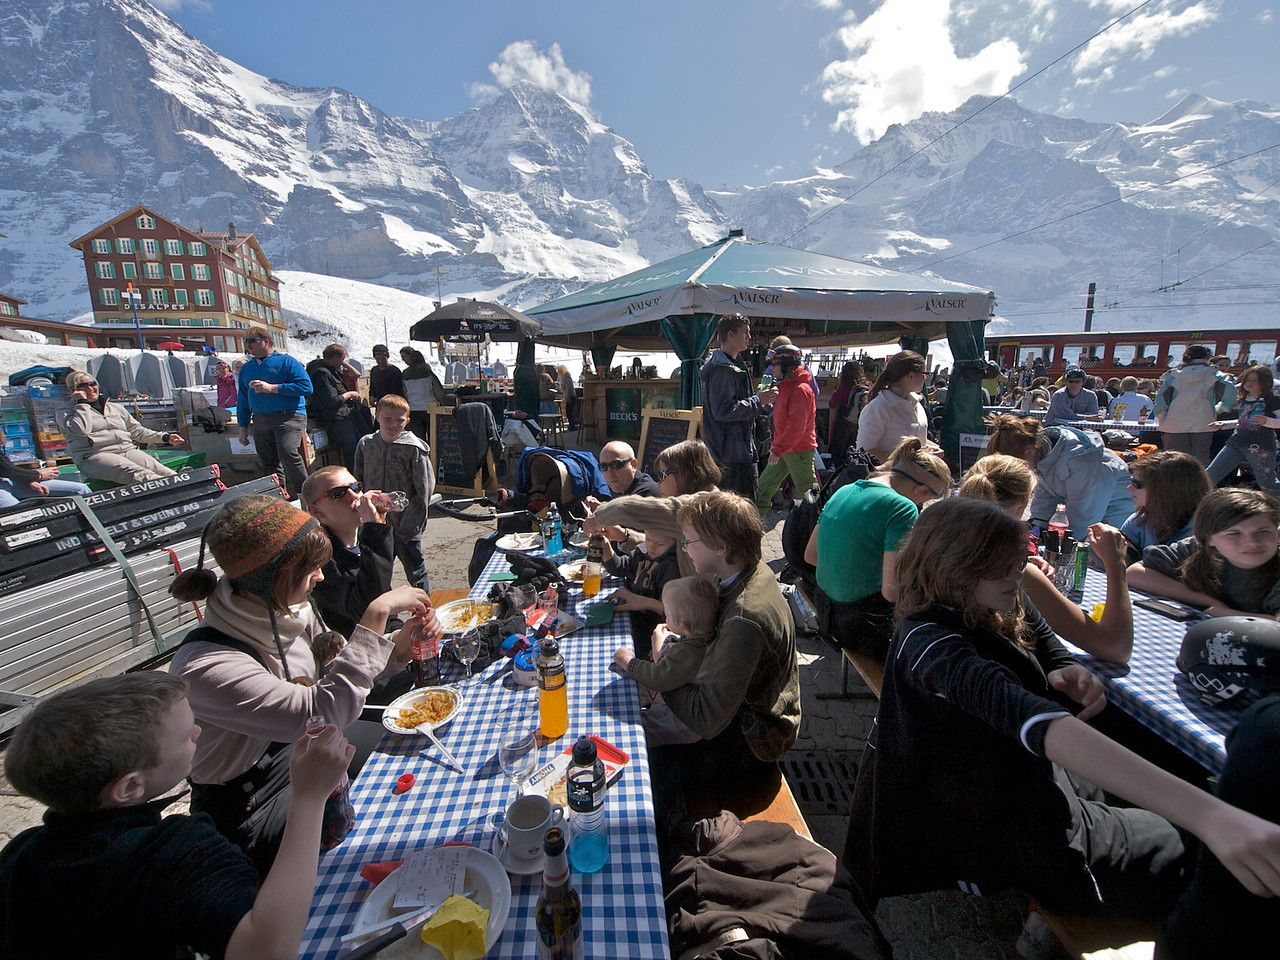 Sunday 5th April 2009 - Lunch in the alps, what could be better.